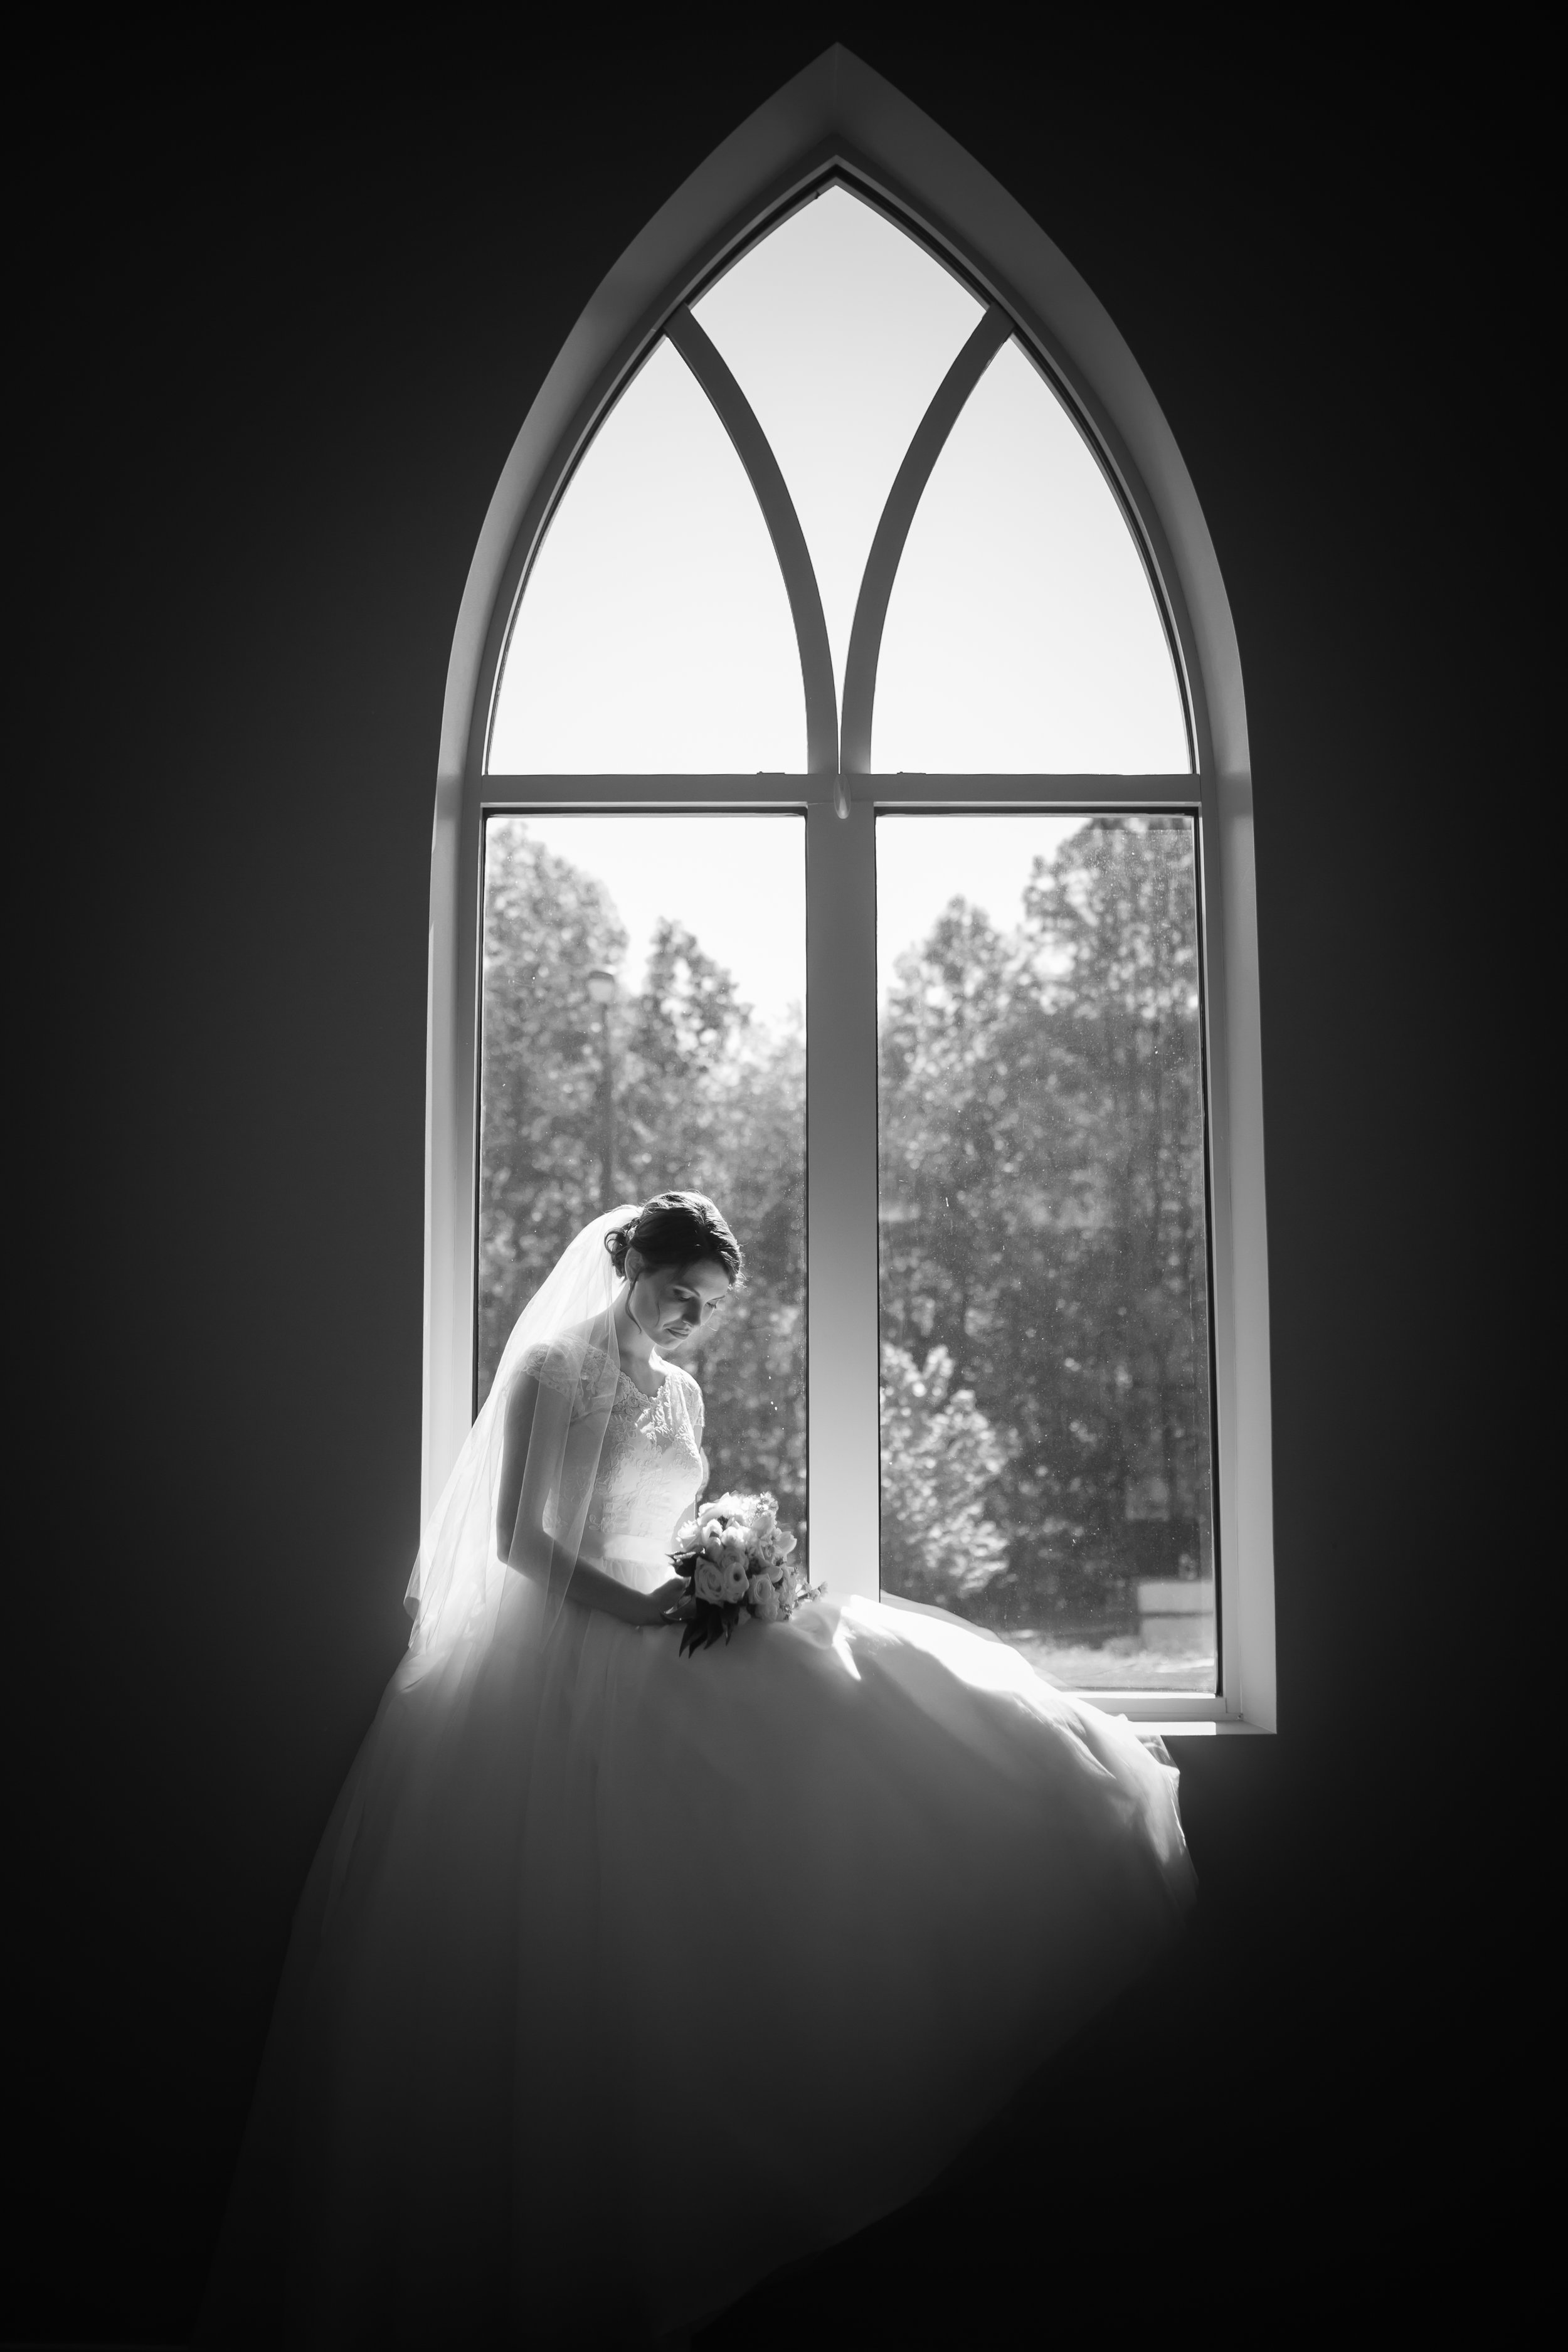 Wedding_Portraits-54.jpg